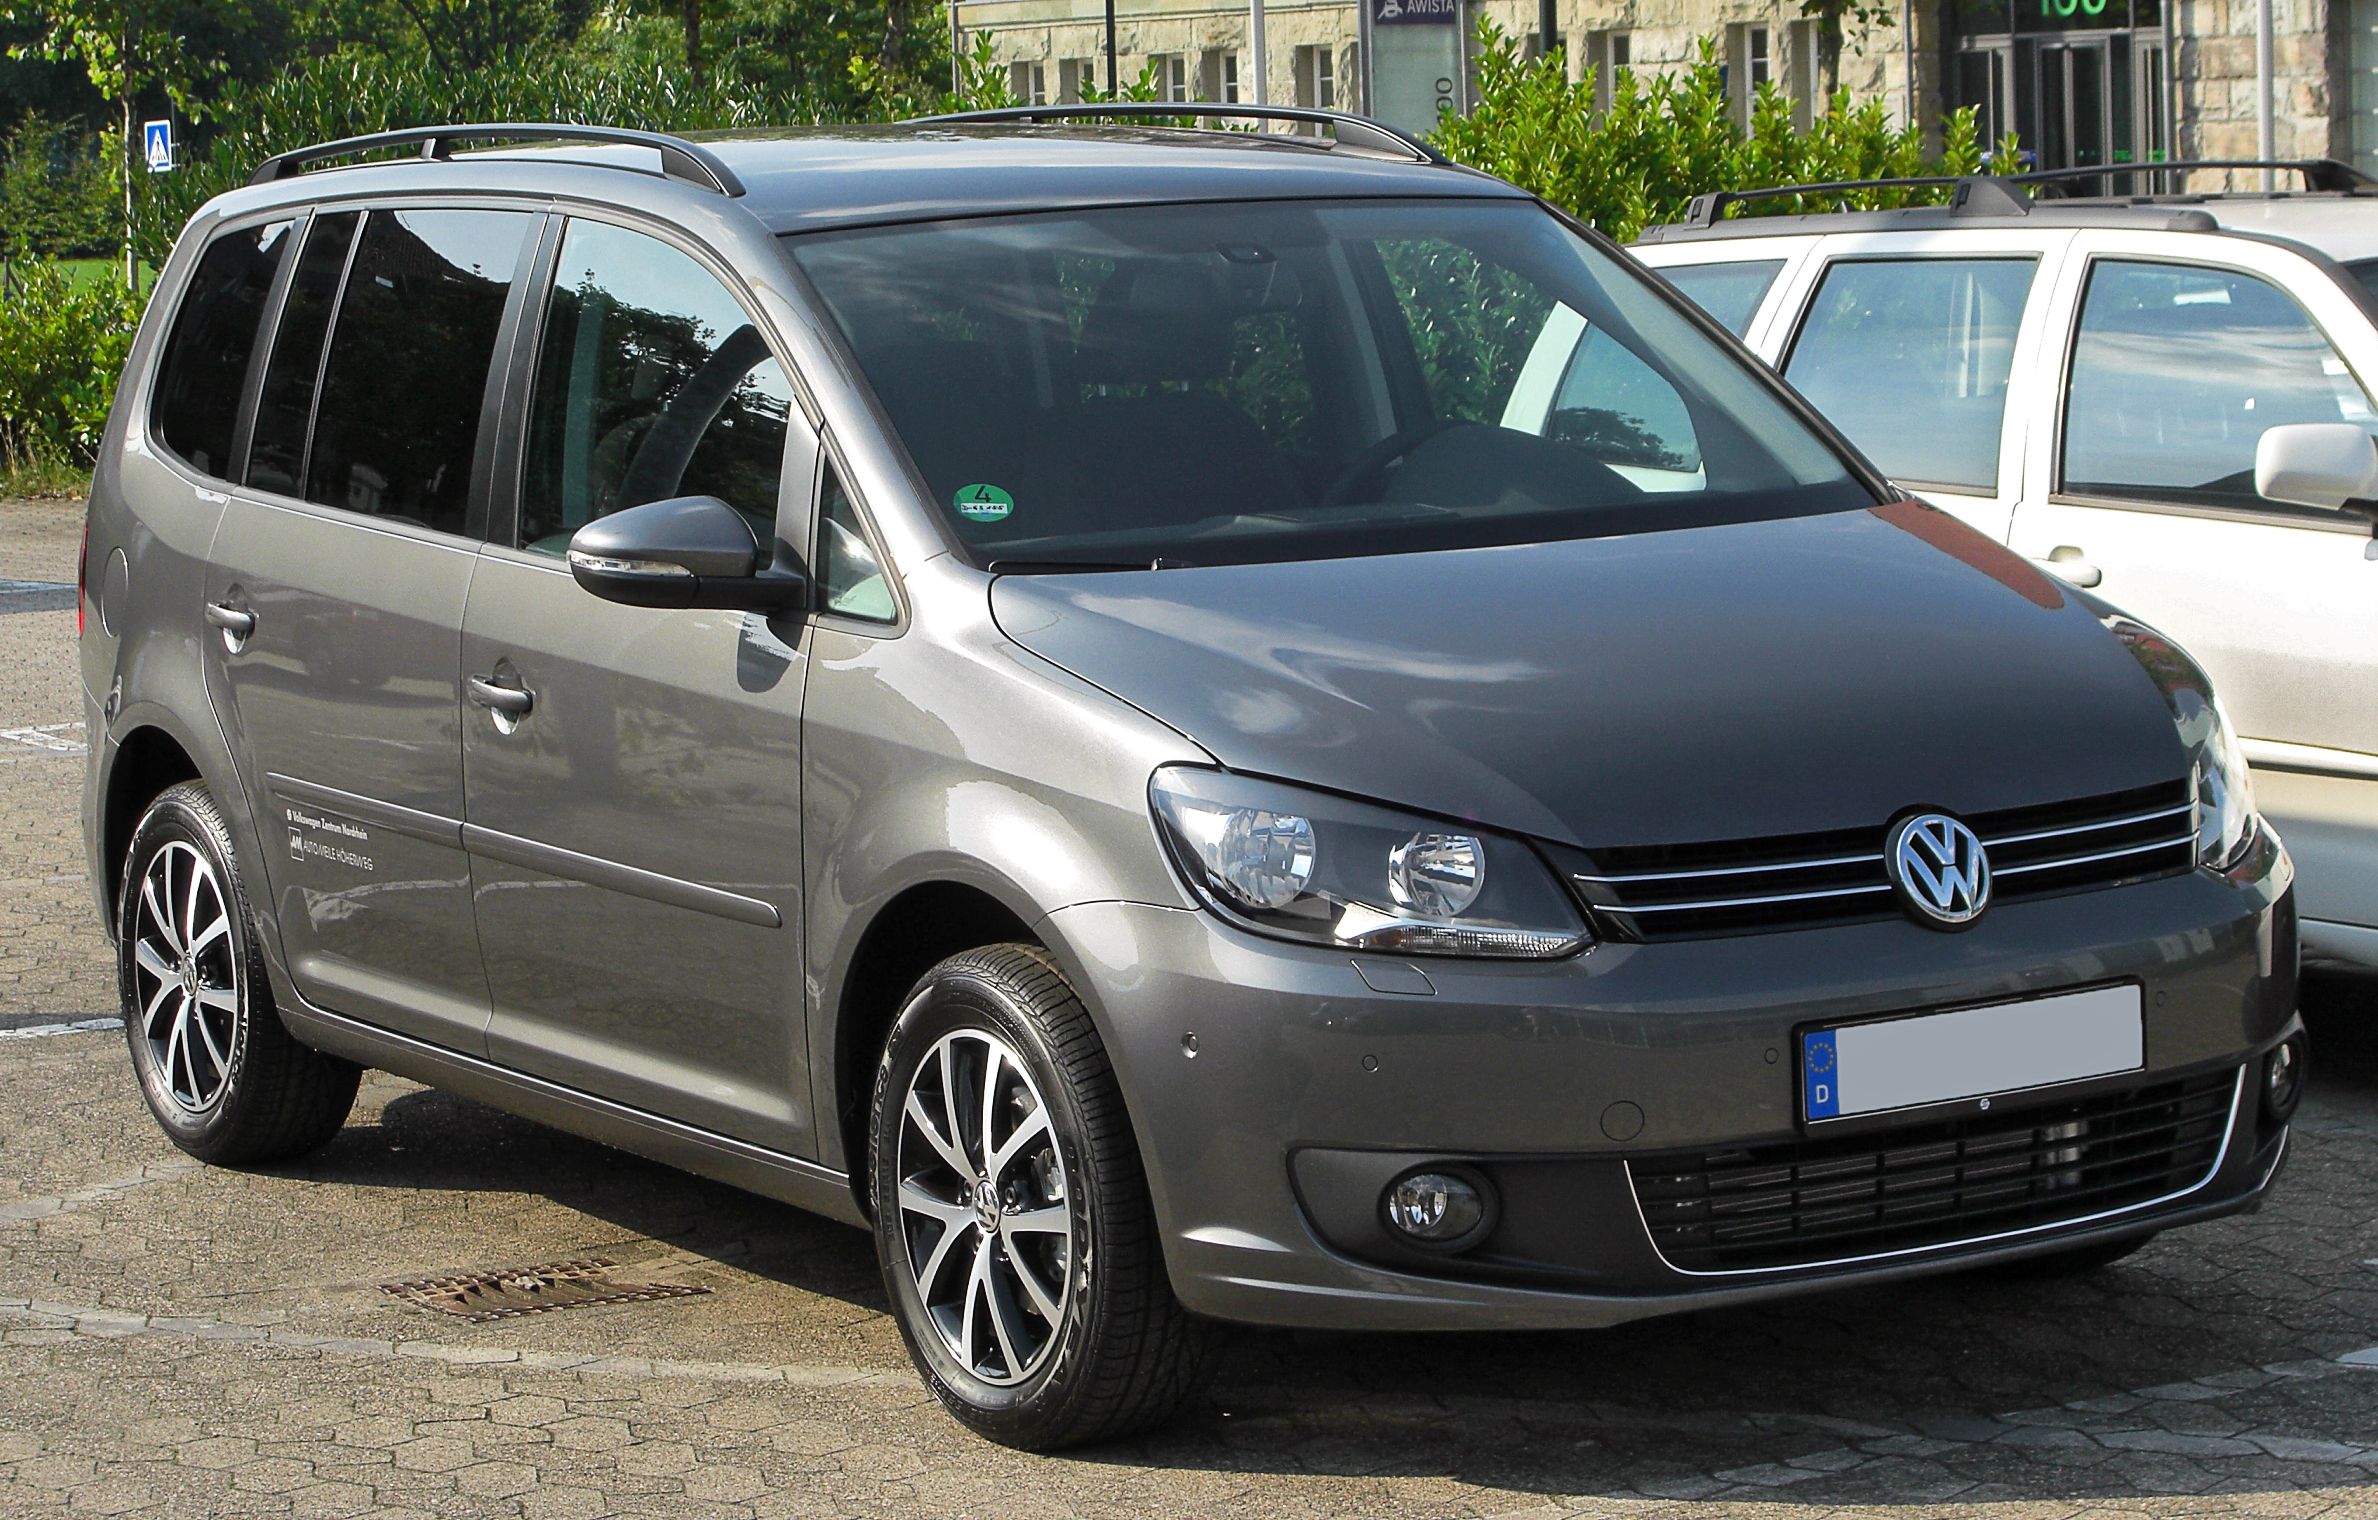 2014 volkswagen touran ii pictures information and specs auto. Black Bedroom Furniture Sets. Home Design Ideas